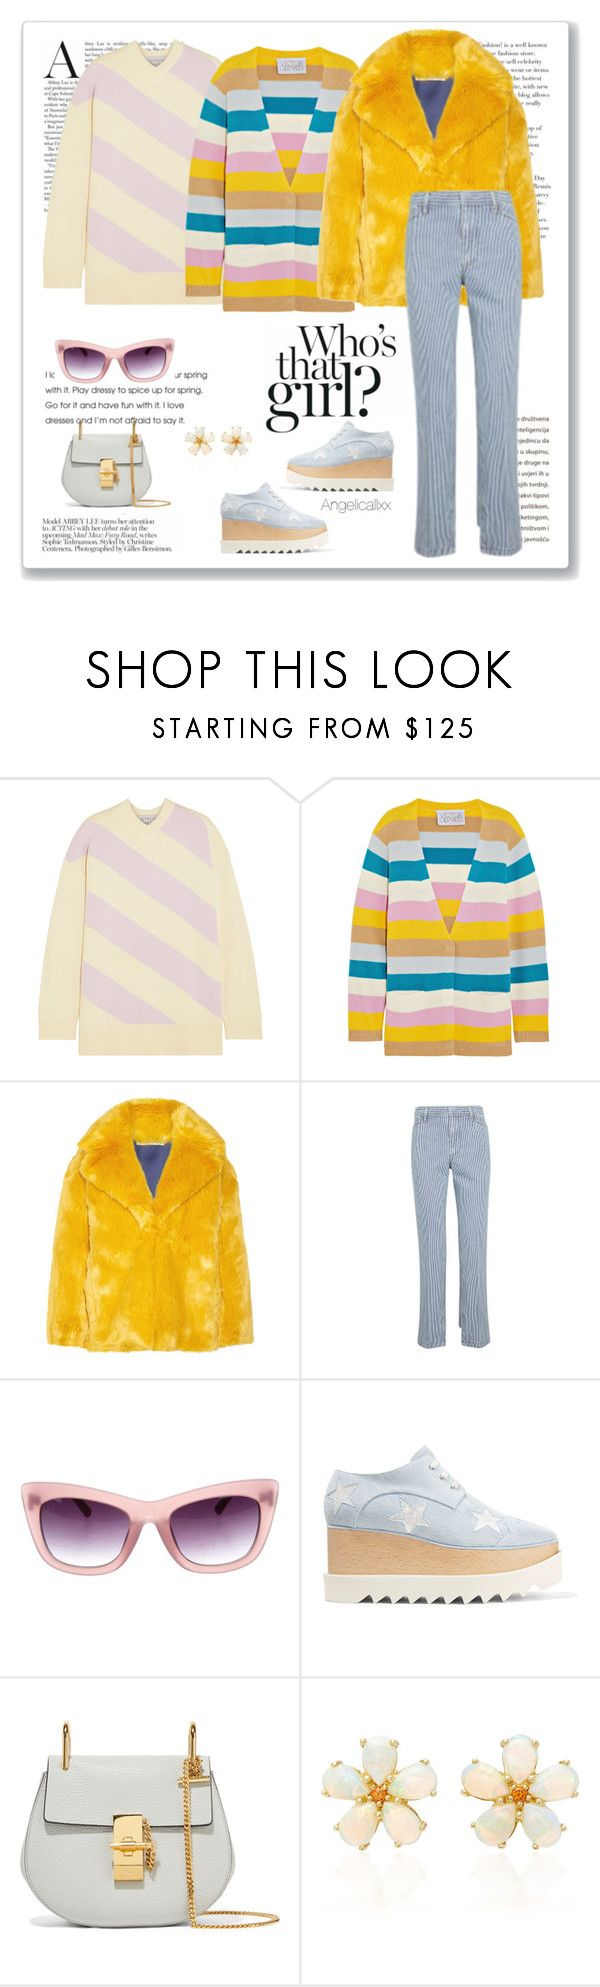 """""""Stripes Layers"""" by angelicallxx ❤ liked on Polyvore featuring Victor Glemaud, Diane Von Furstenberg, Toga, Linda Farrow, STELLA McCARTNEY, Chloé, Paul Morelli, stripesonstripes and PatternChallenge"""